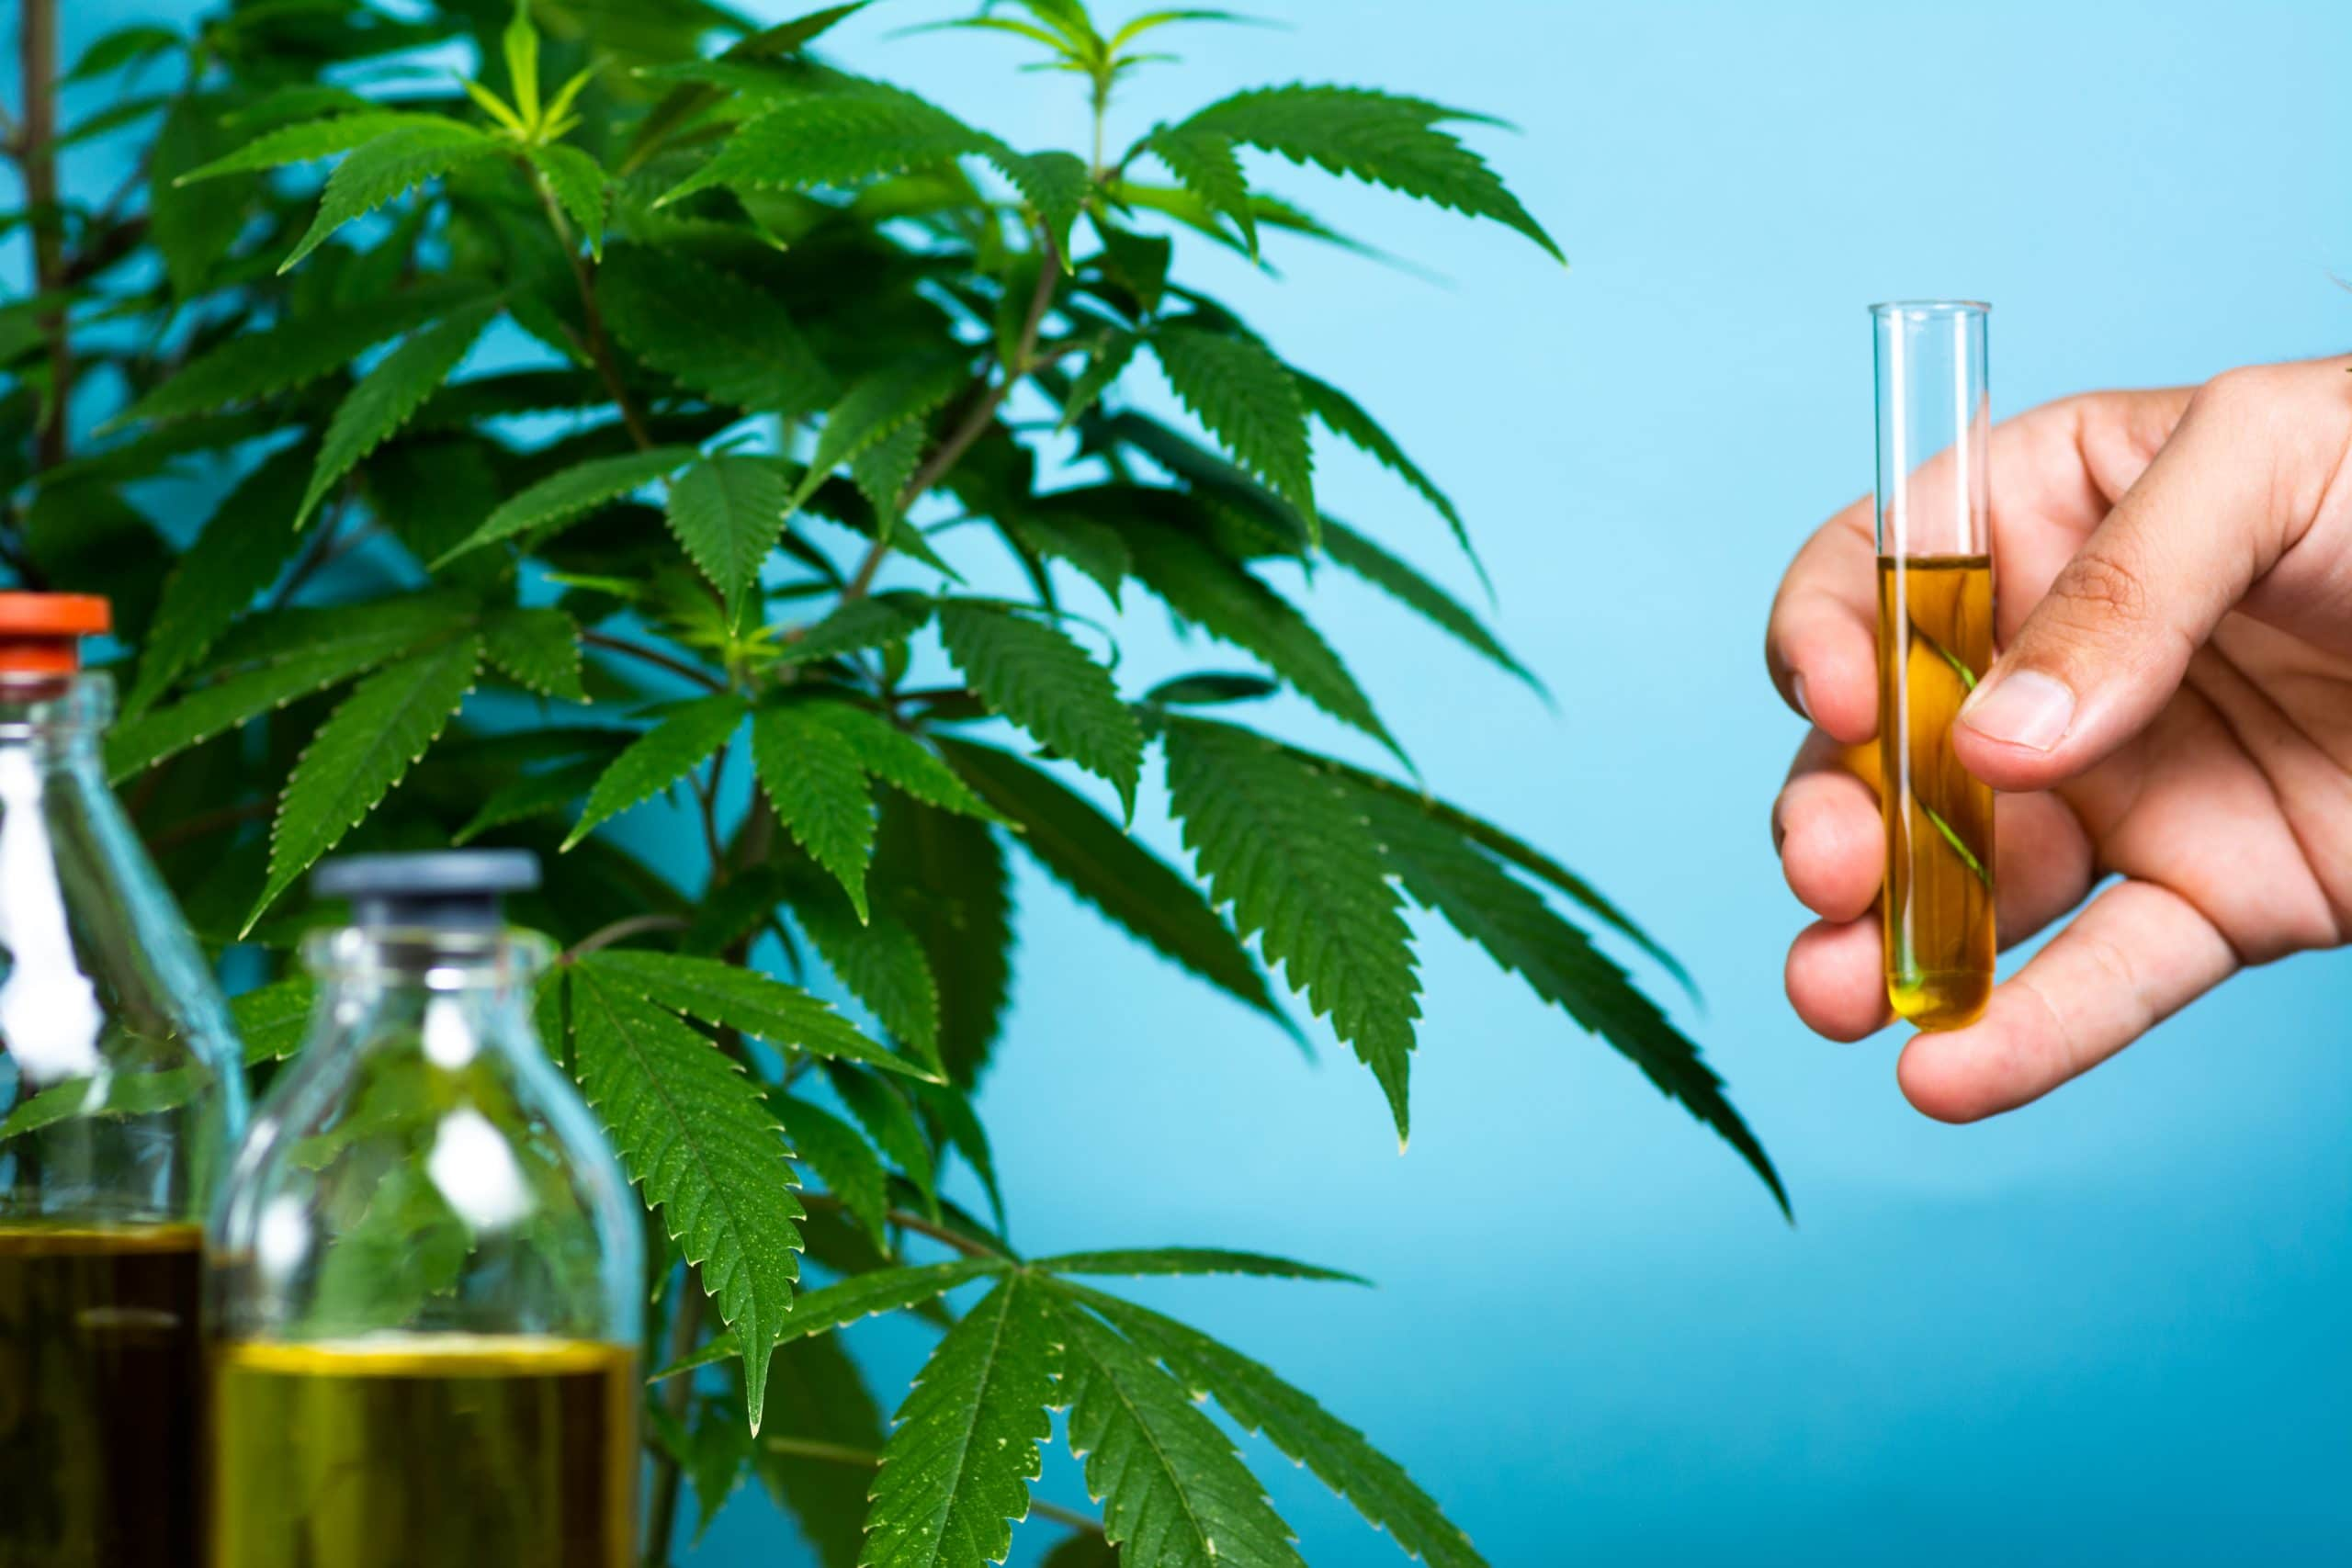 hand-holding-test-tube-of-cannabis-oil-near-plant-and-vials